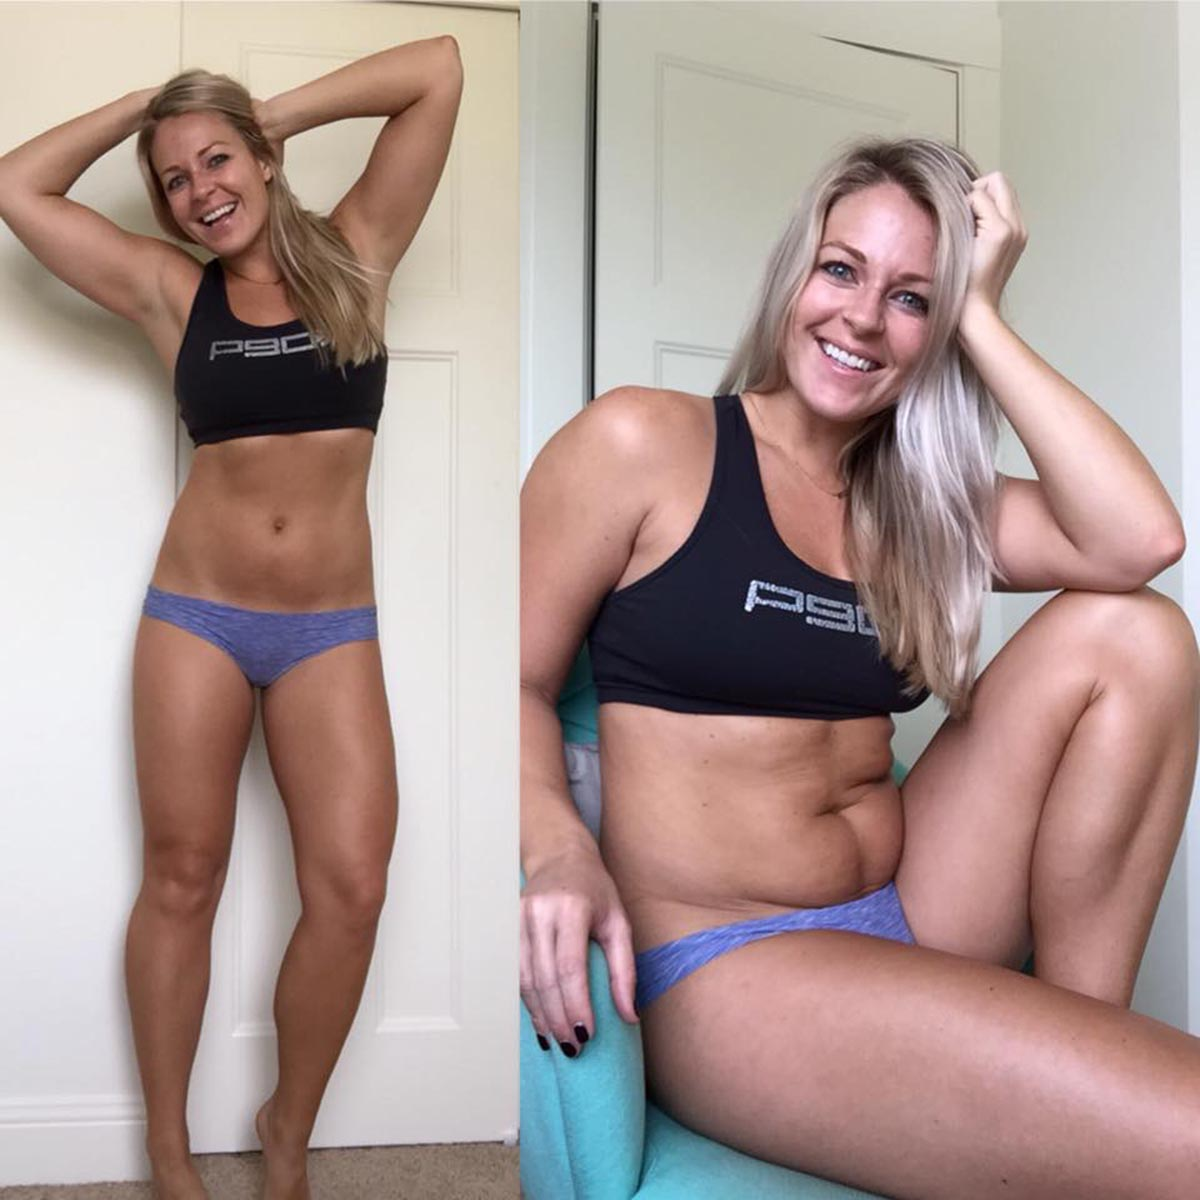 This fitness blogger's side-by-side body photos are inspiring others to love themselves